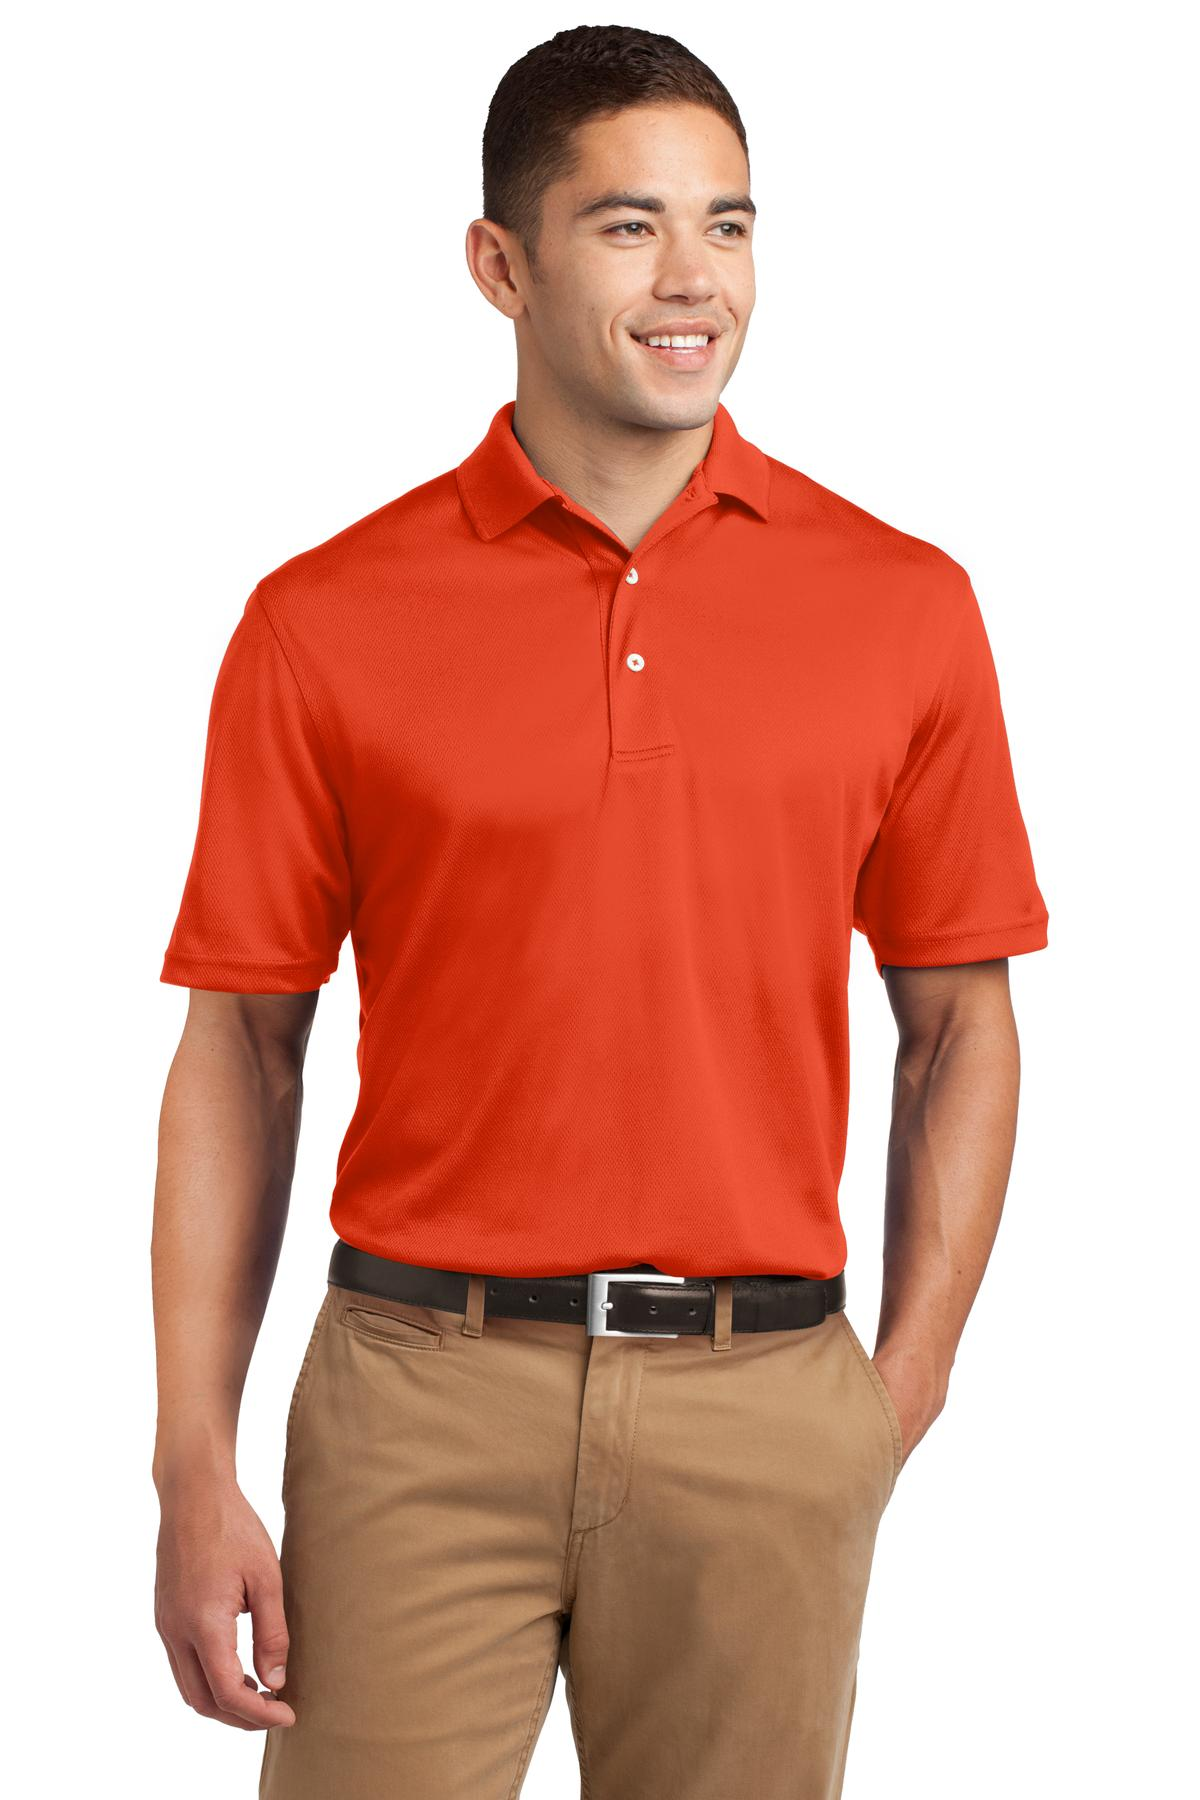 Sport-Tek ®  Dri-Mesh ®  Polo.  K469 - Bright Orange